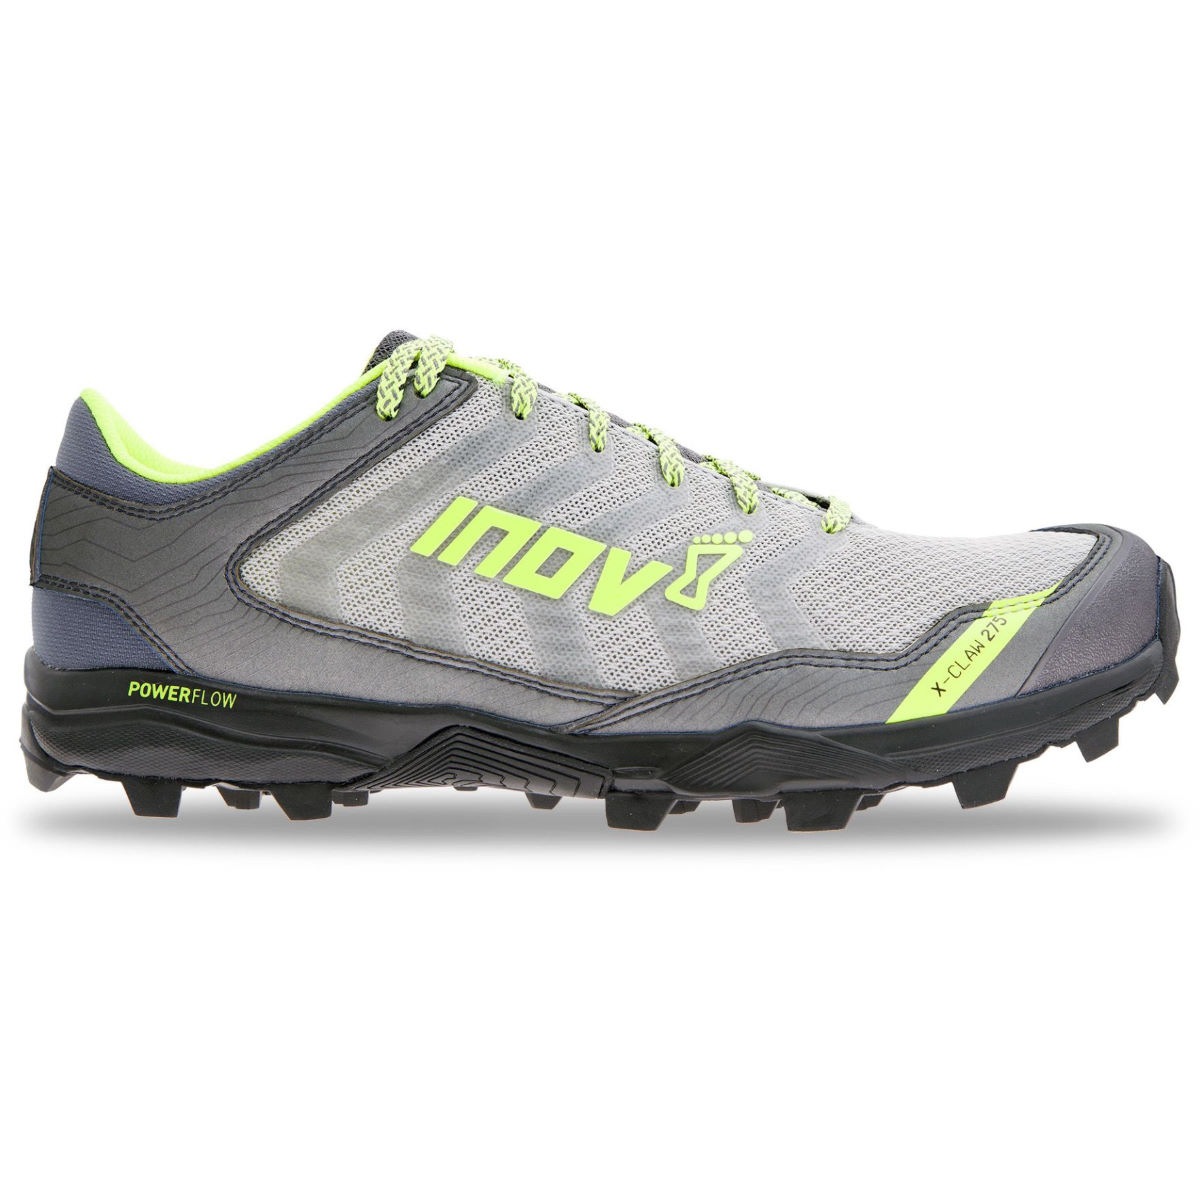 Chaussures Inov-8 X-Claw 275 - UK 10 BLACK/GREEN Chaussures de running trail